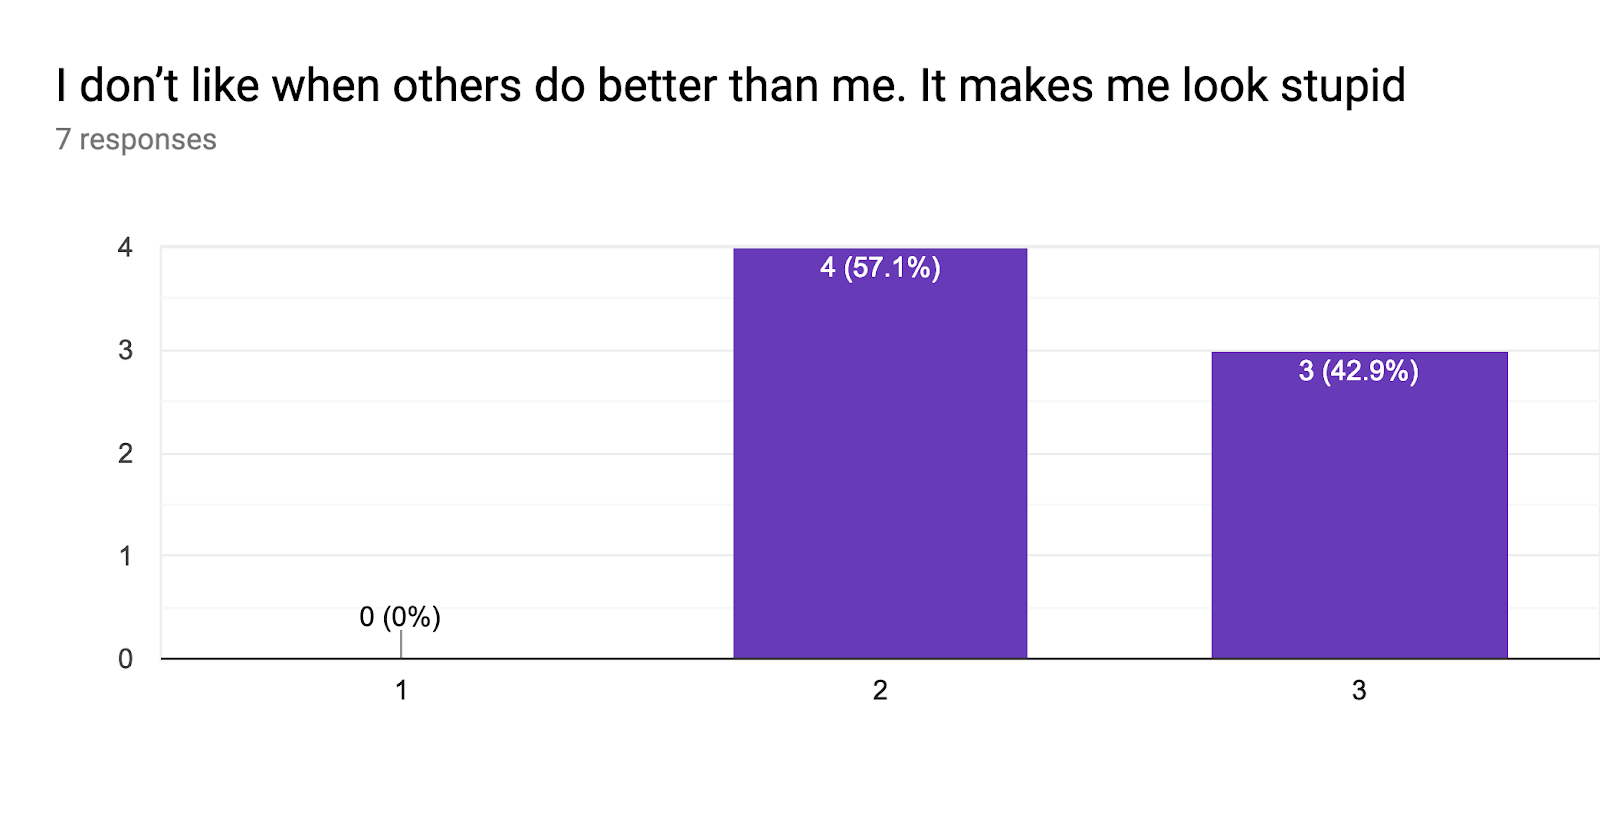 Forms response chart. Question title: I don't like when others do better than me. It makes me look stupid. Number of responses: 7 responses.